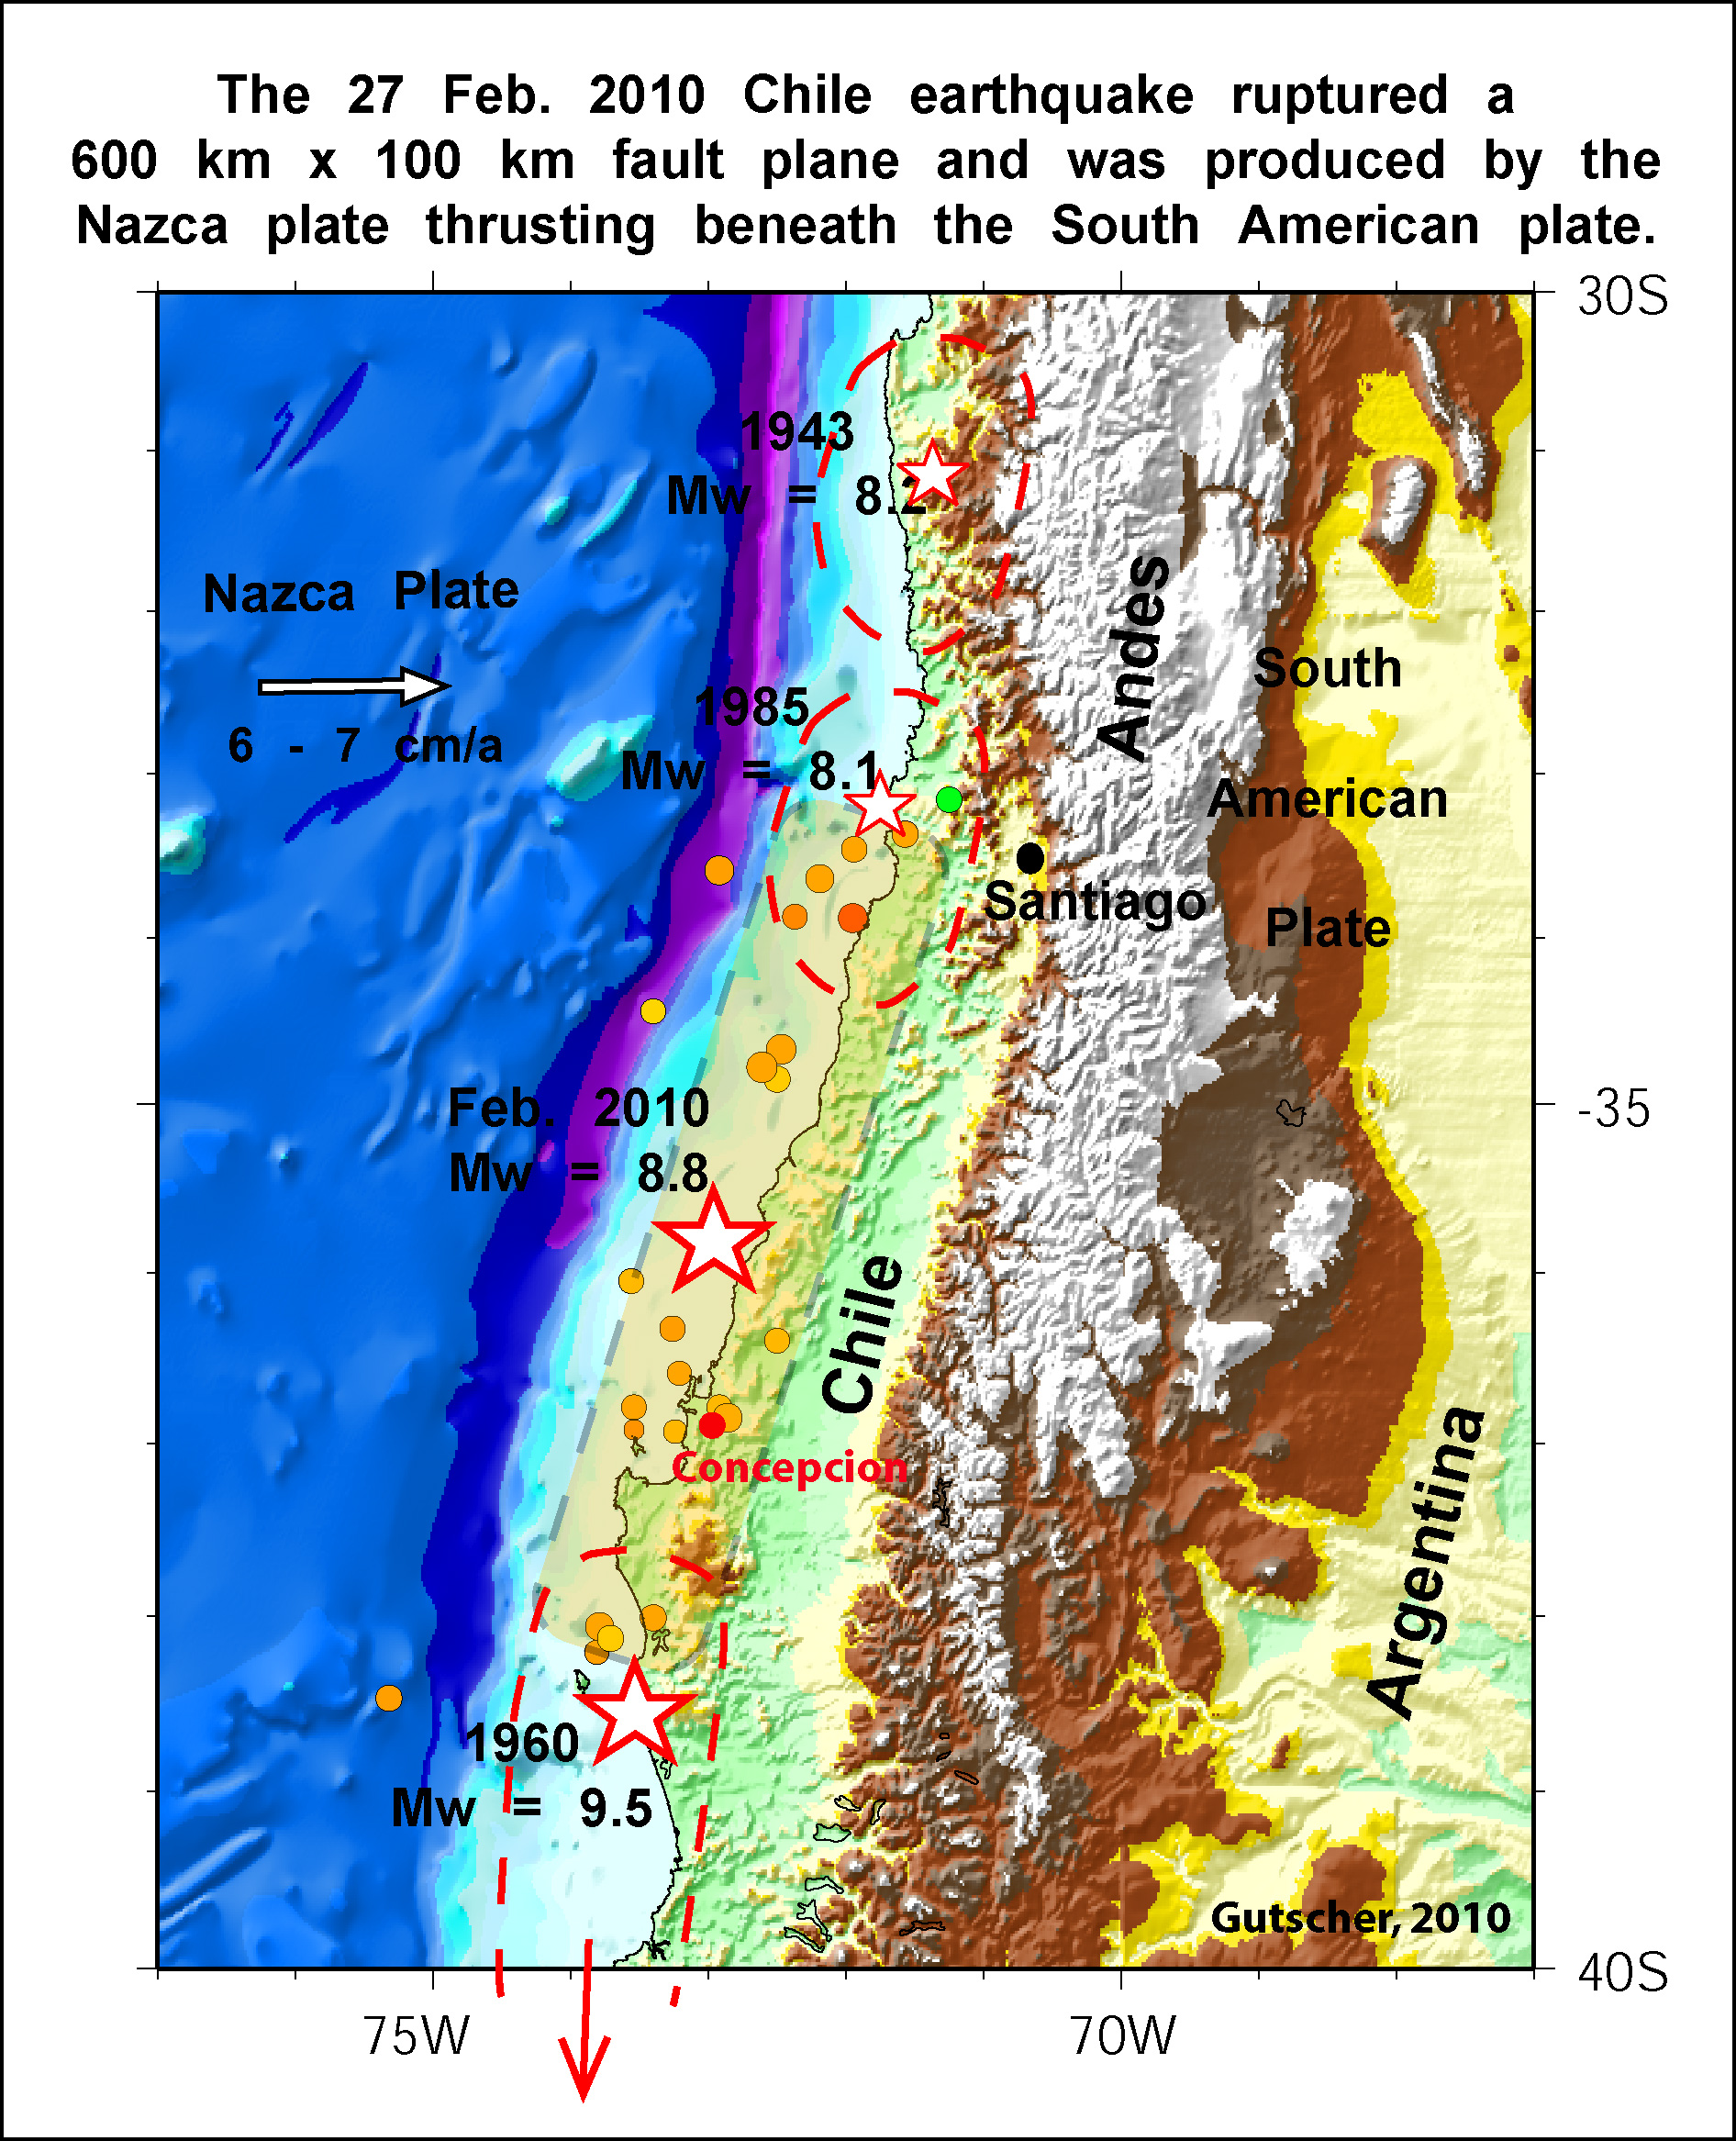 Tectonic environment of the Chile February 27th earthquake